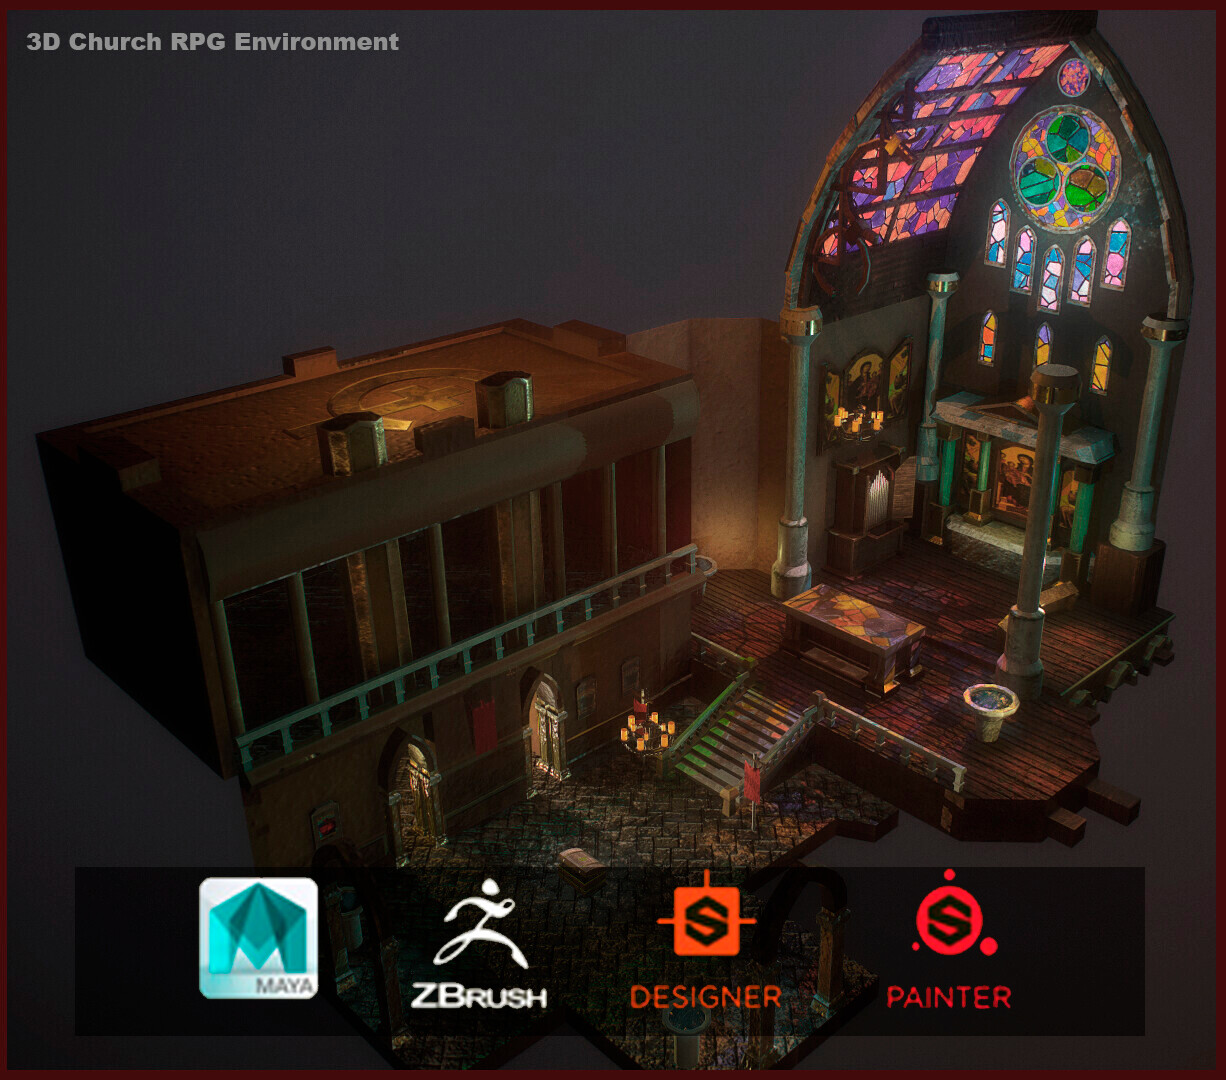 RPG Church - Full 3D Environment development